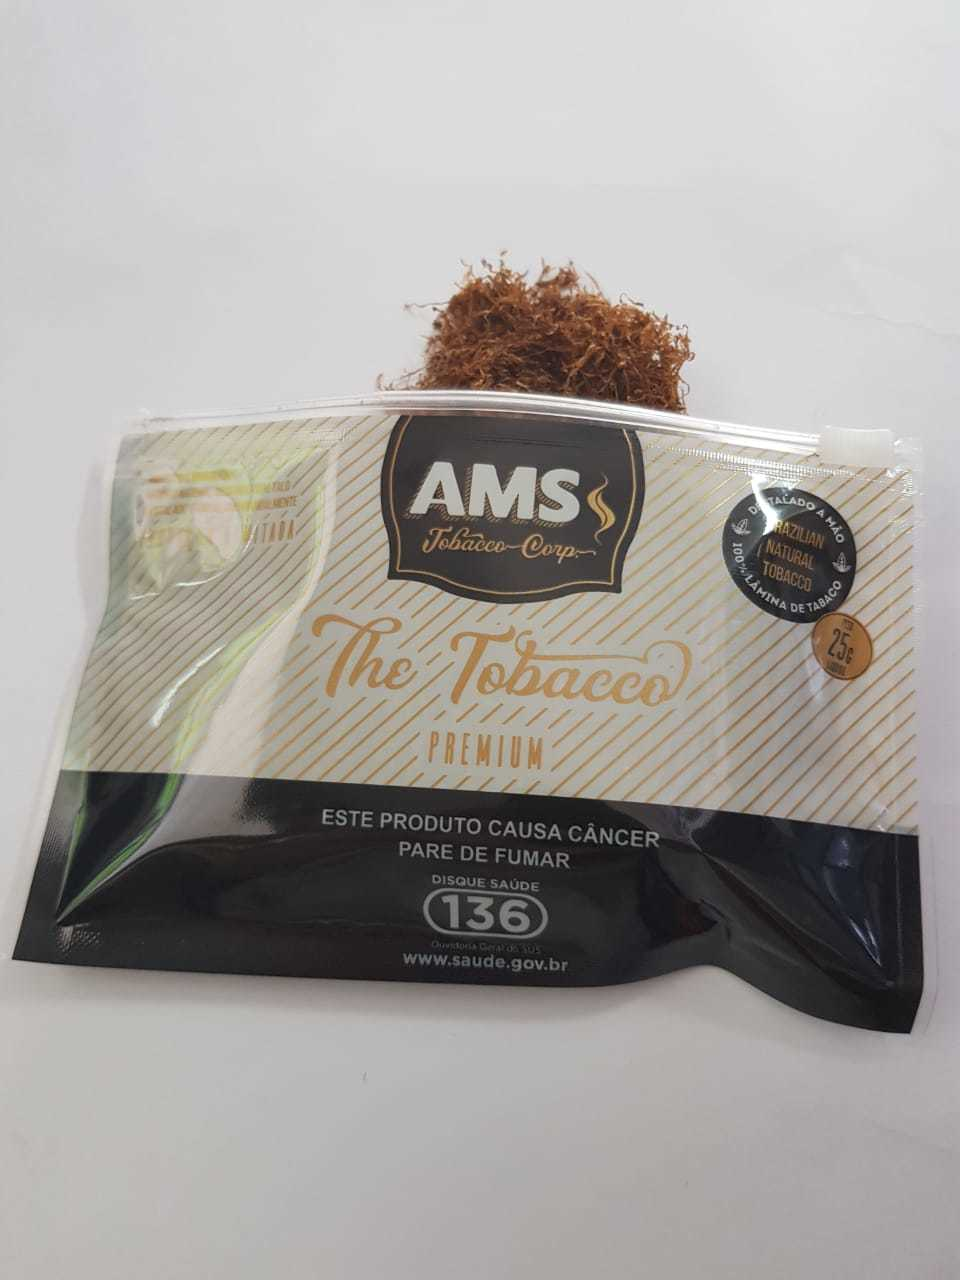 Tabaco Premium AMS (25g) The Tobacco